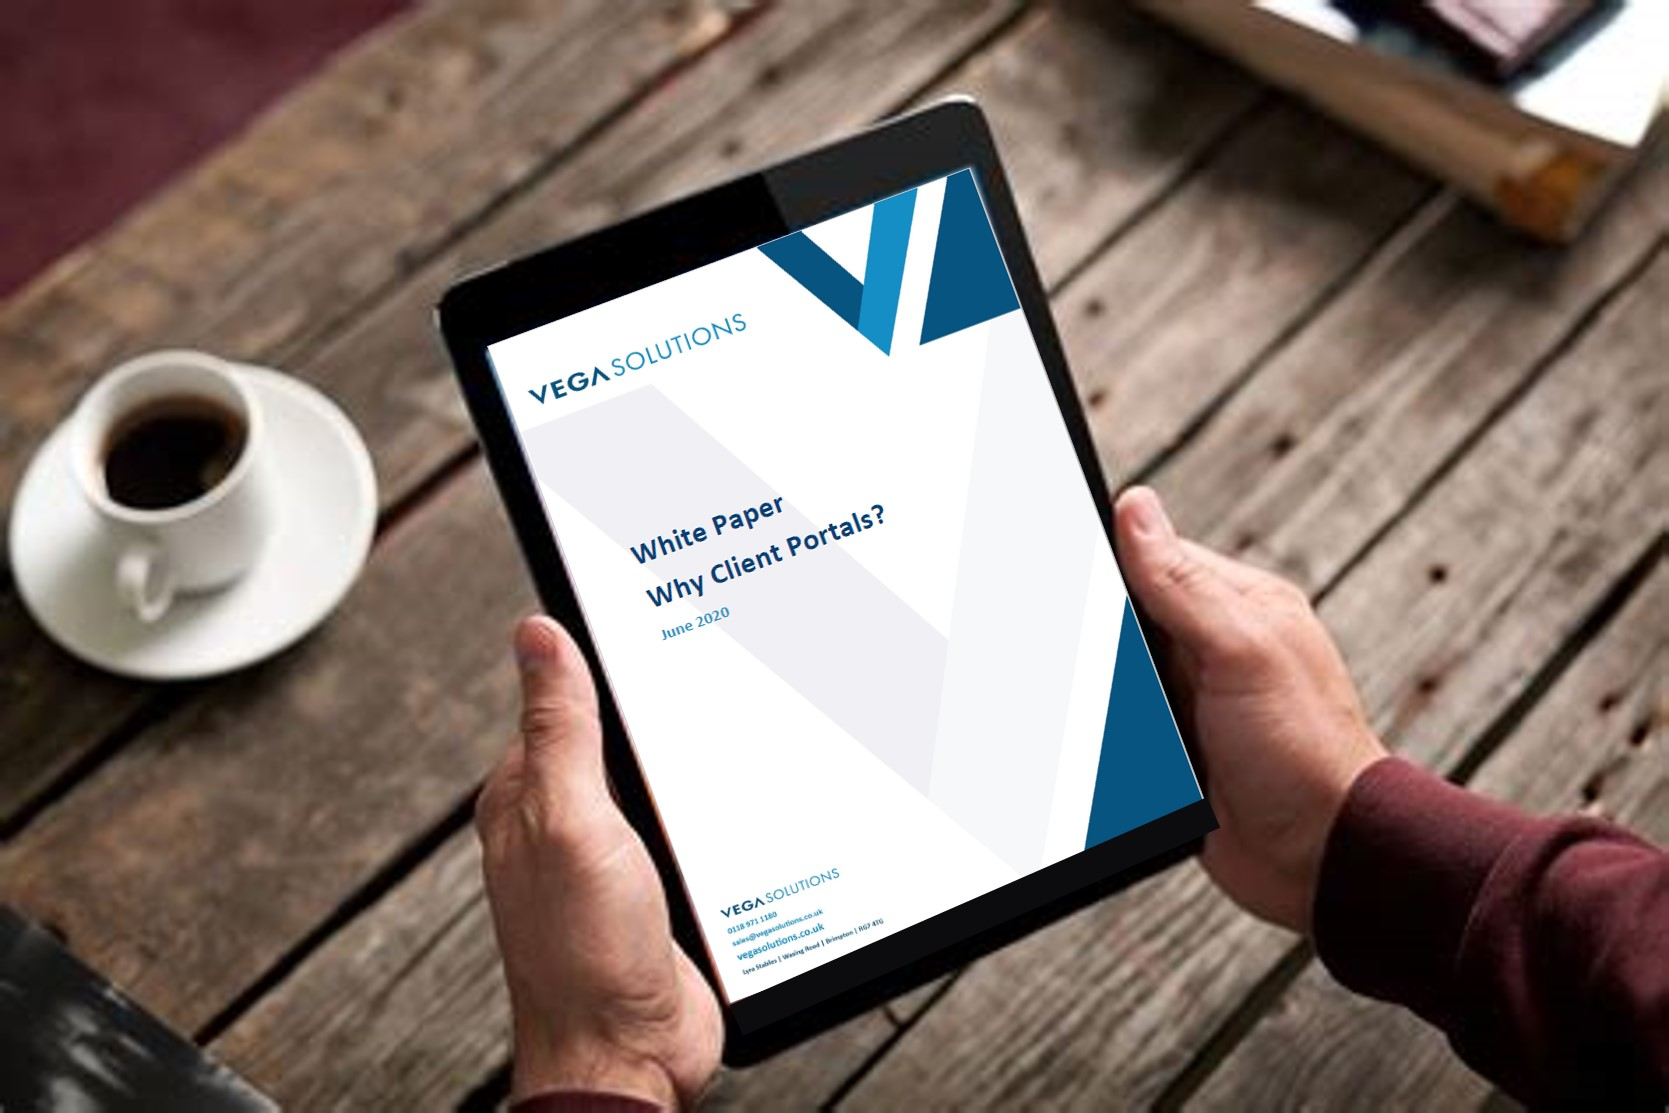 Tablet showing the front cover of Solitaire Consulting white paper